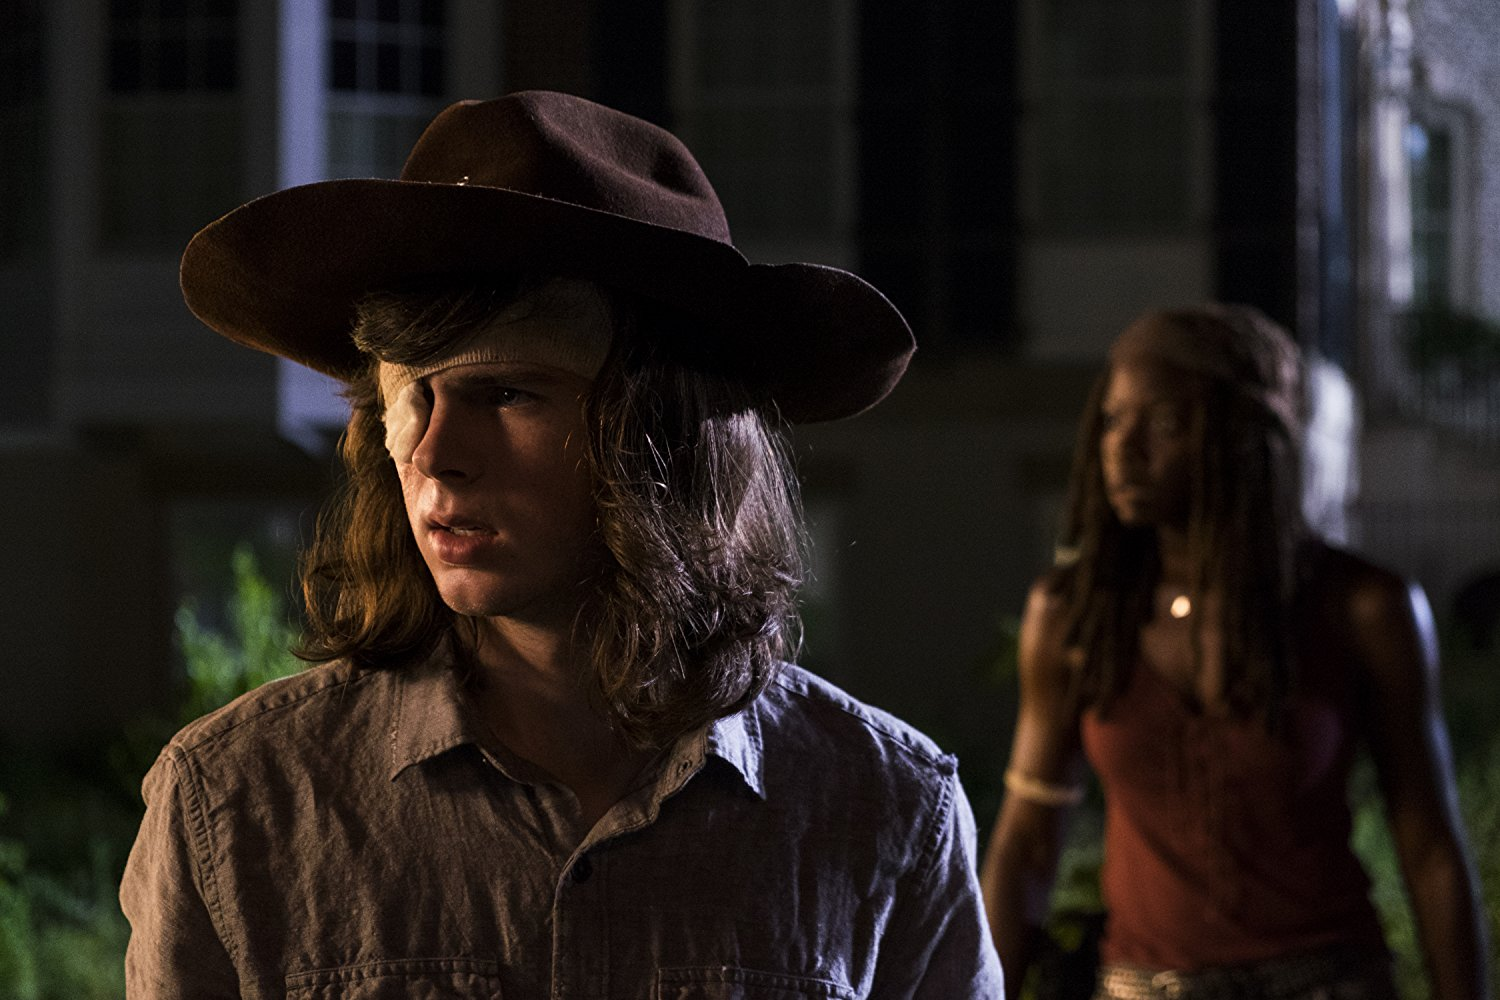 Carl y Michonne en el episodio 8x08 de The Walking Dead